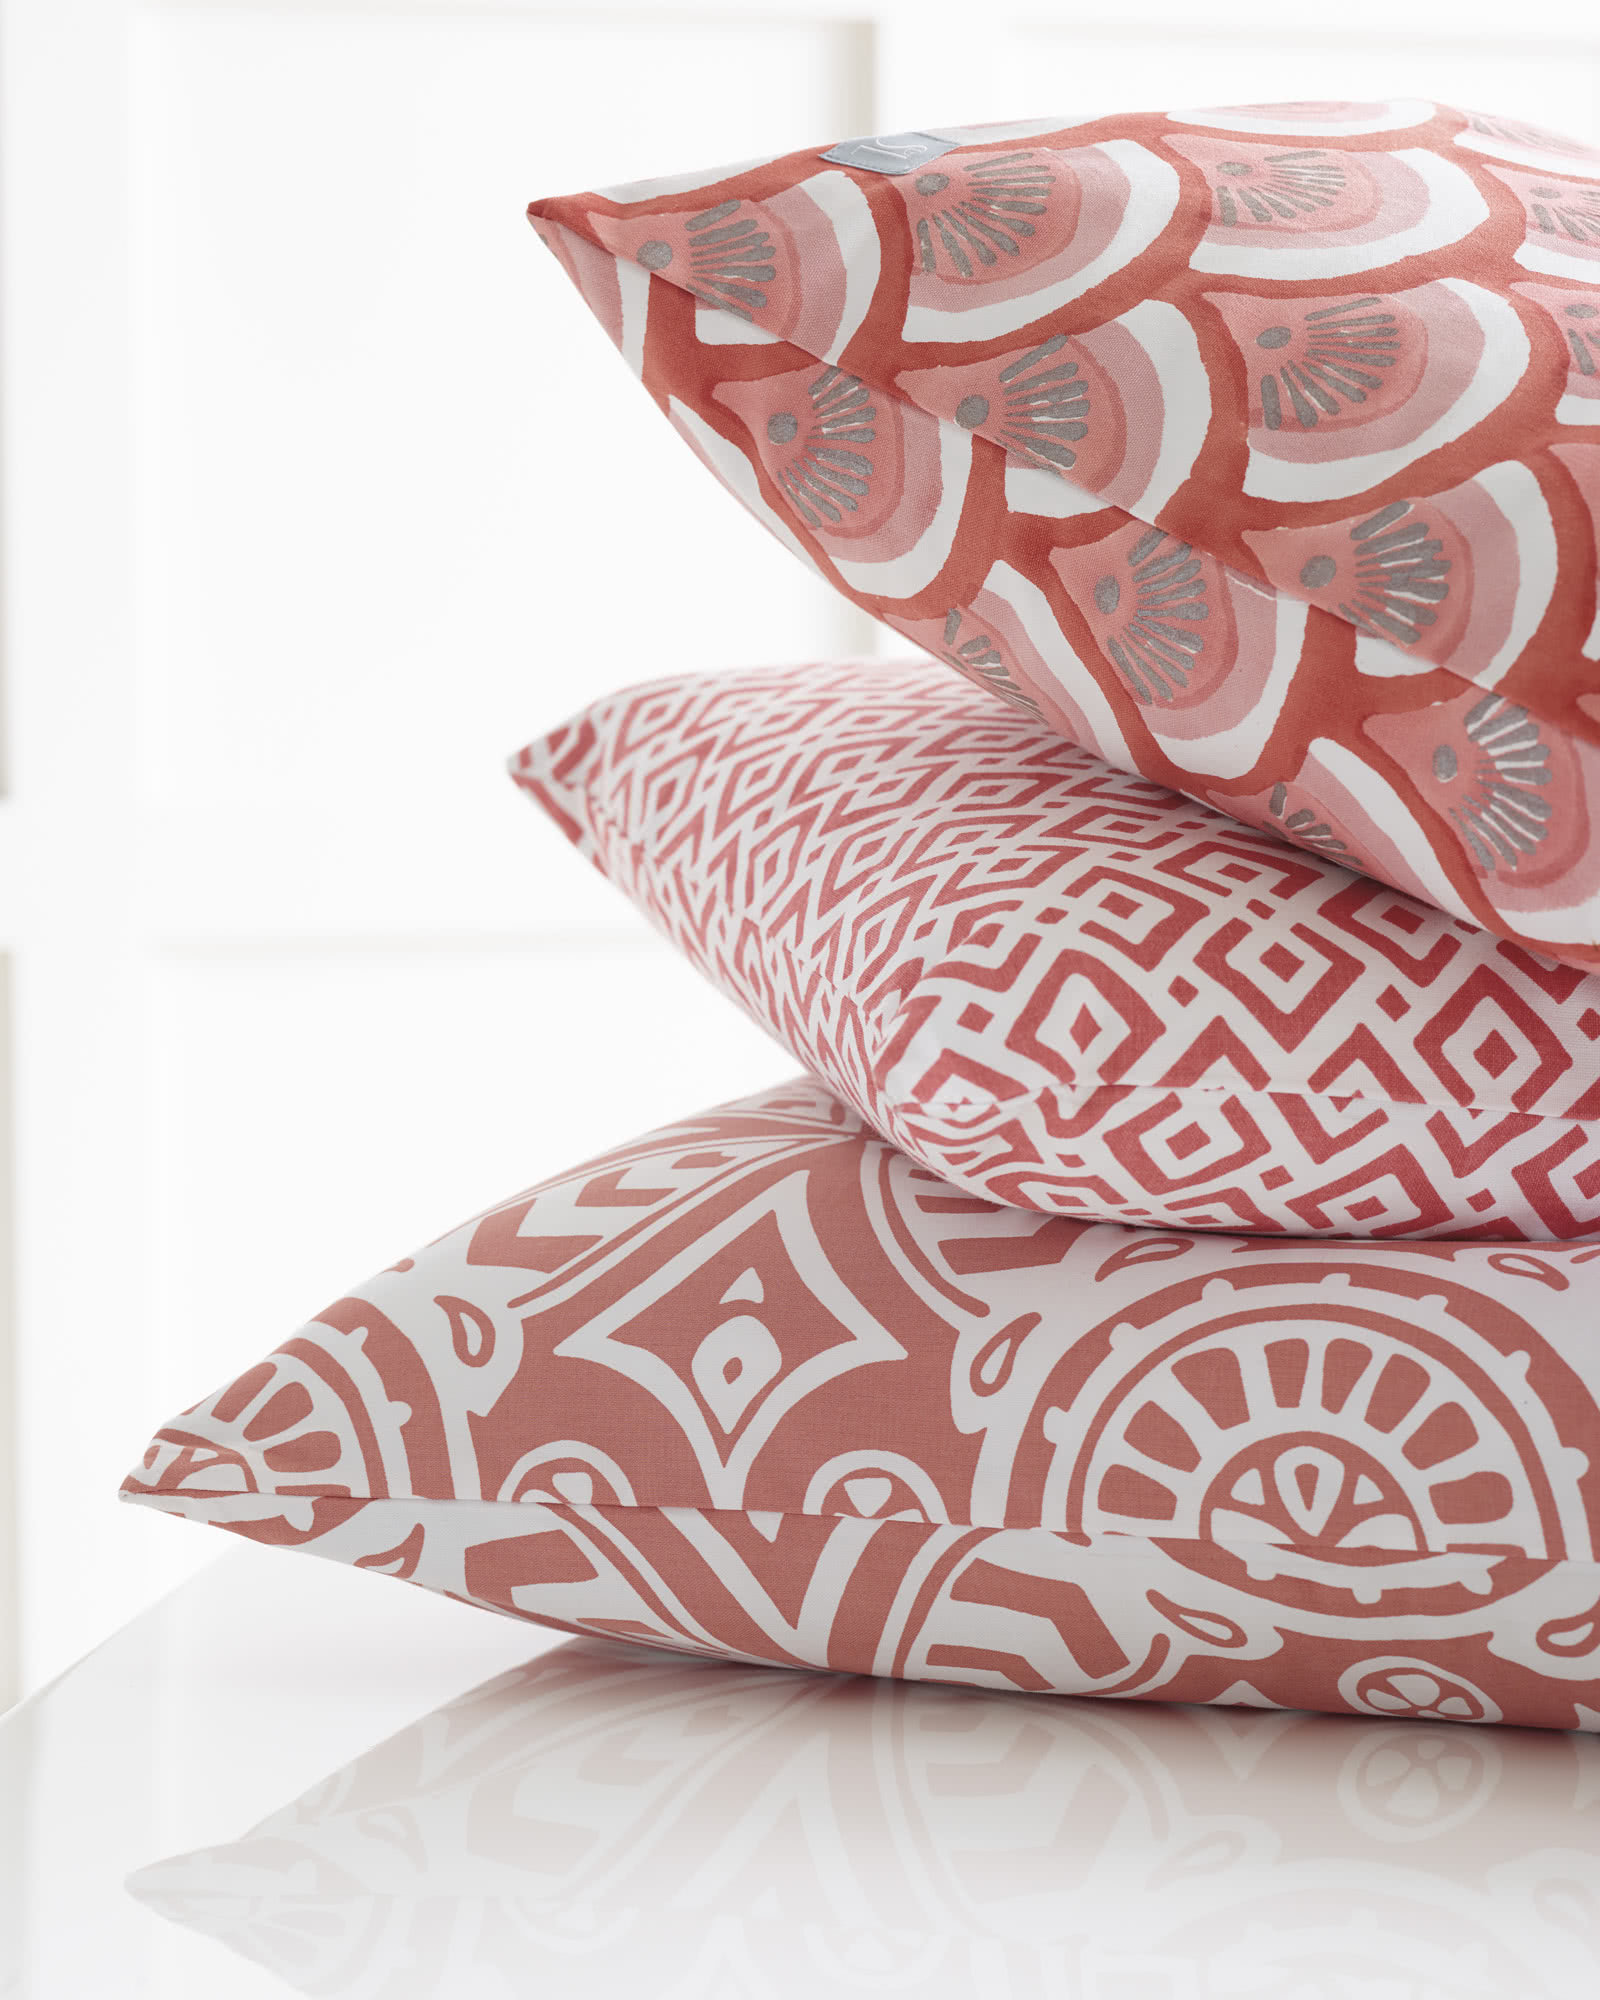 Kyoto Pillow Covers - Serena & Lily